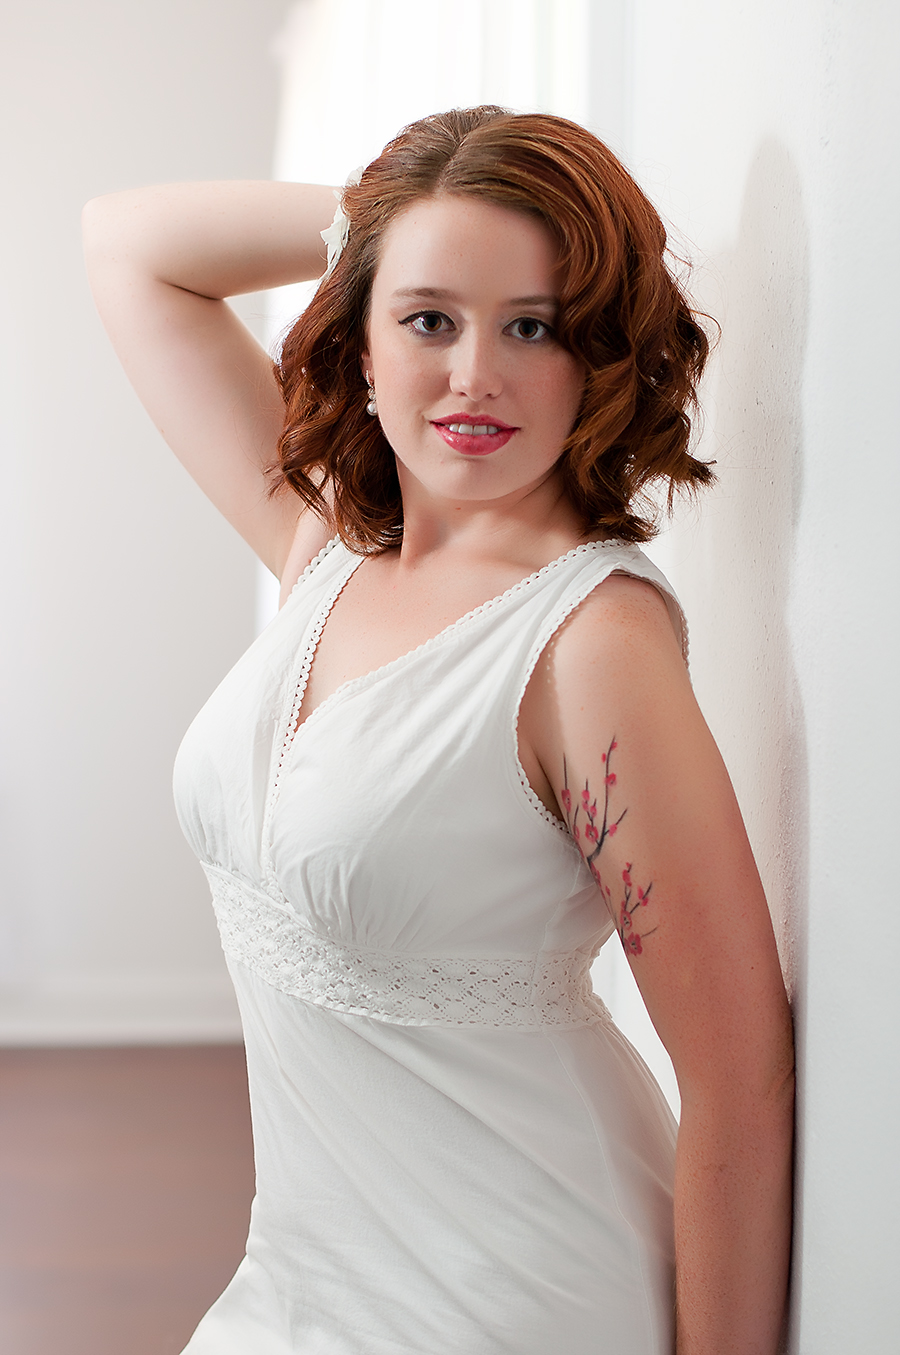 boudoir pretty shreveport sharellestudiosboudoir studios shoot sharelle album erin please slideshow